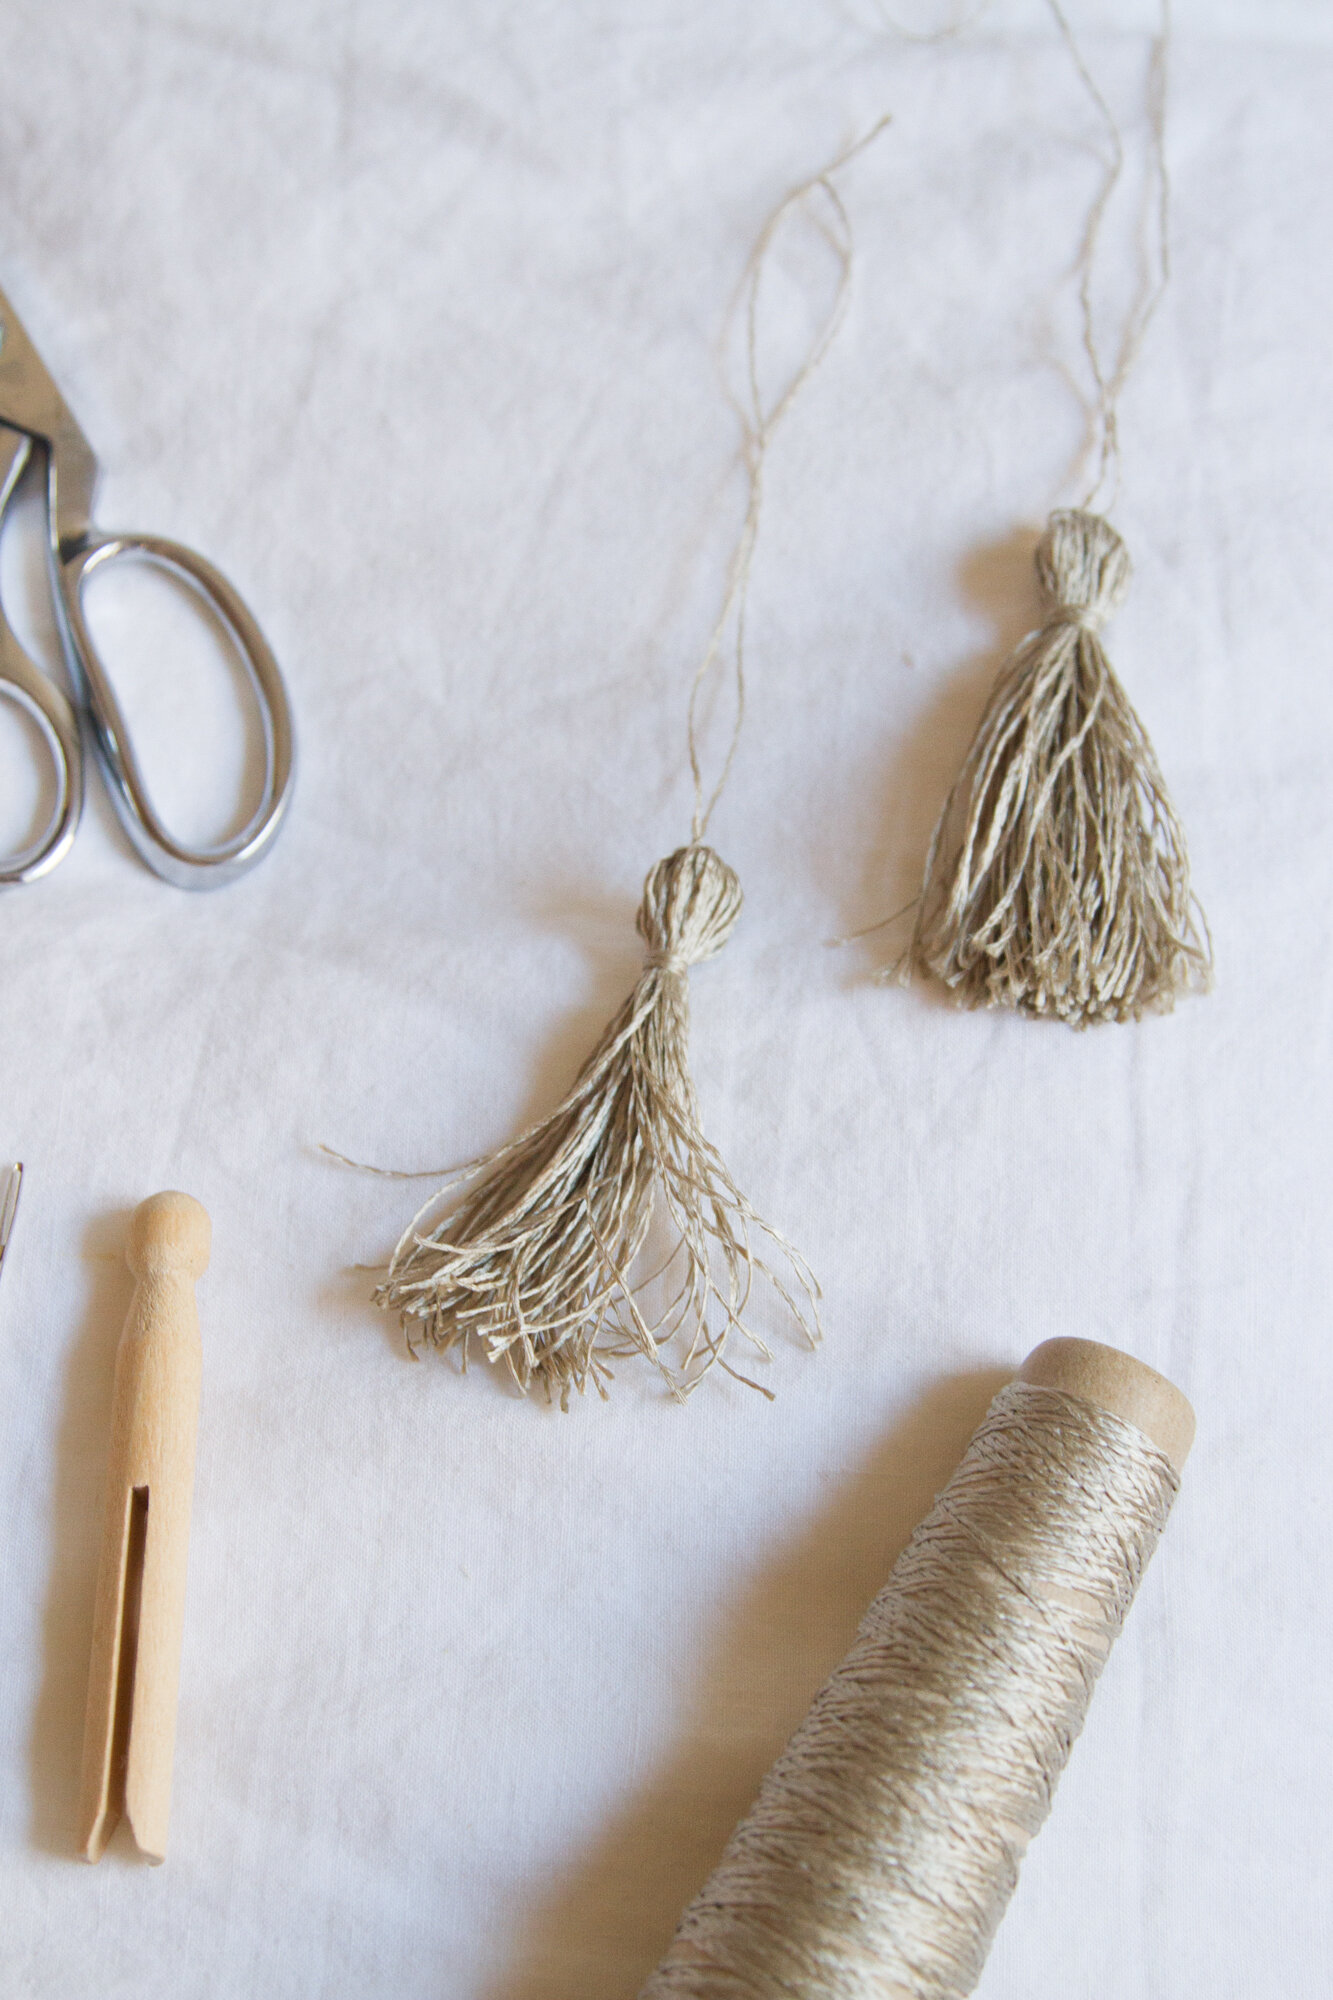 make your own pom-poms and tassels | reading my tea leaves